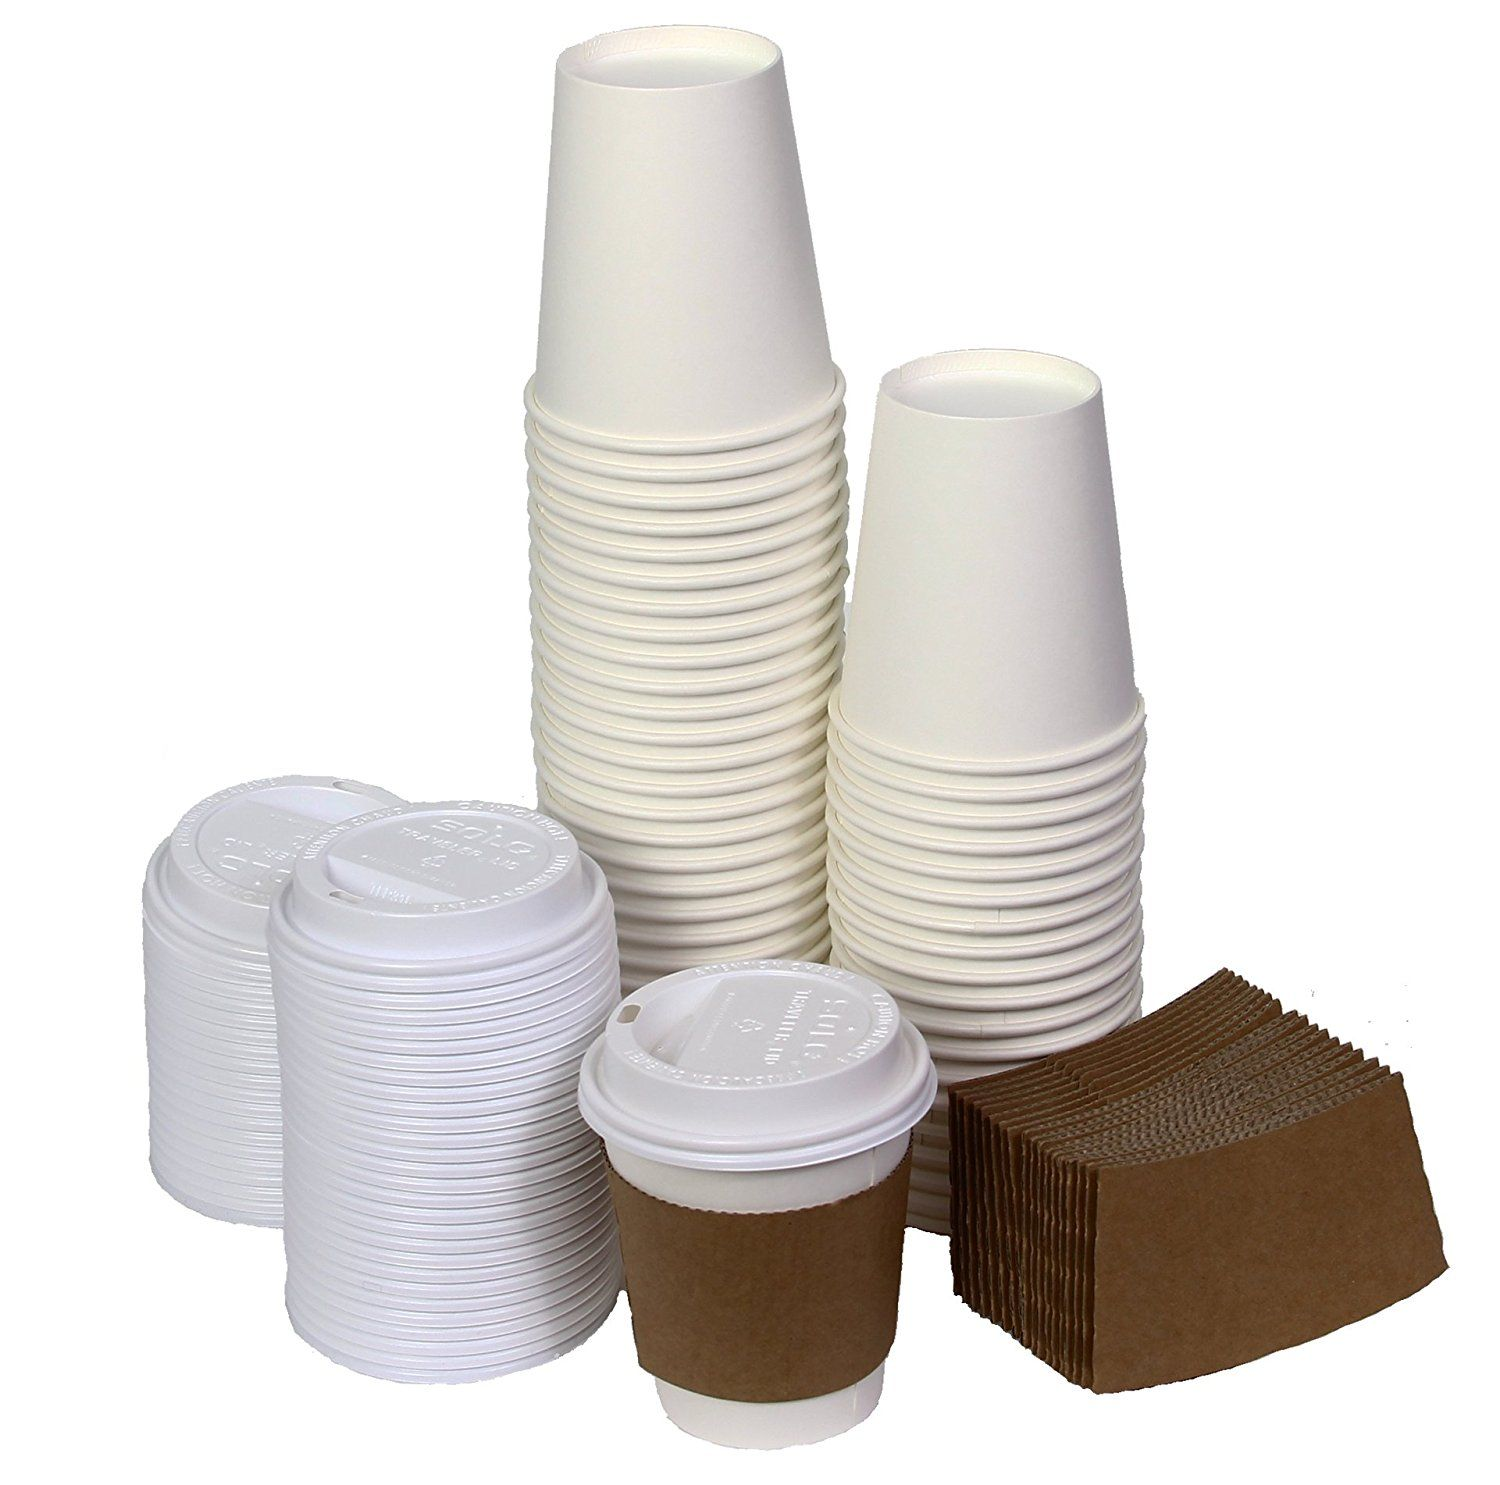 NYHI 10 Ounce Disposable Coffee Cups with Lids